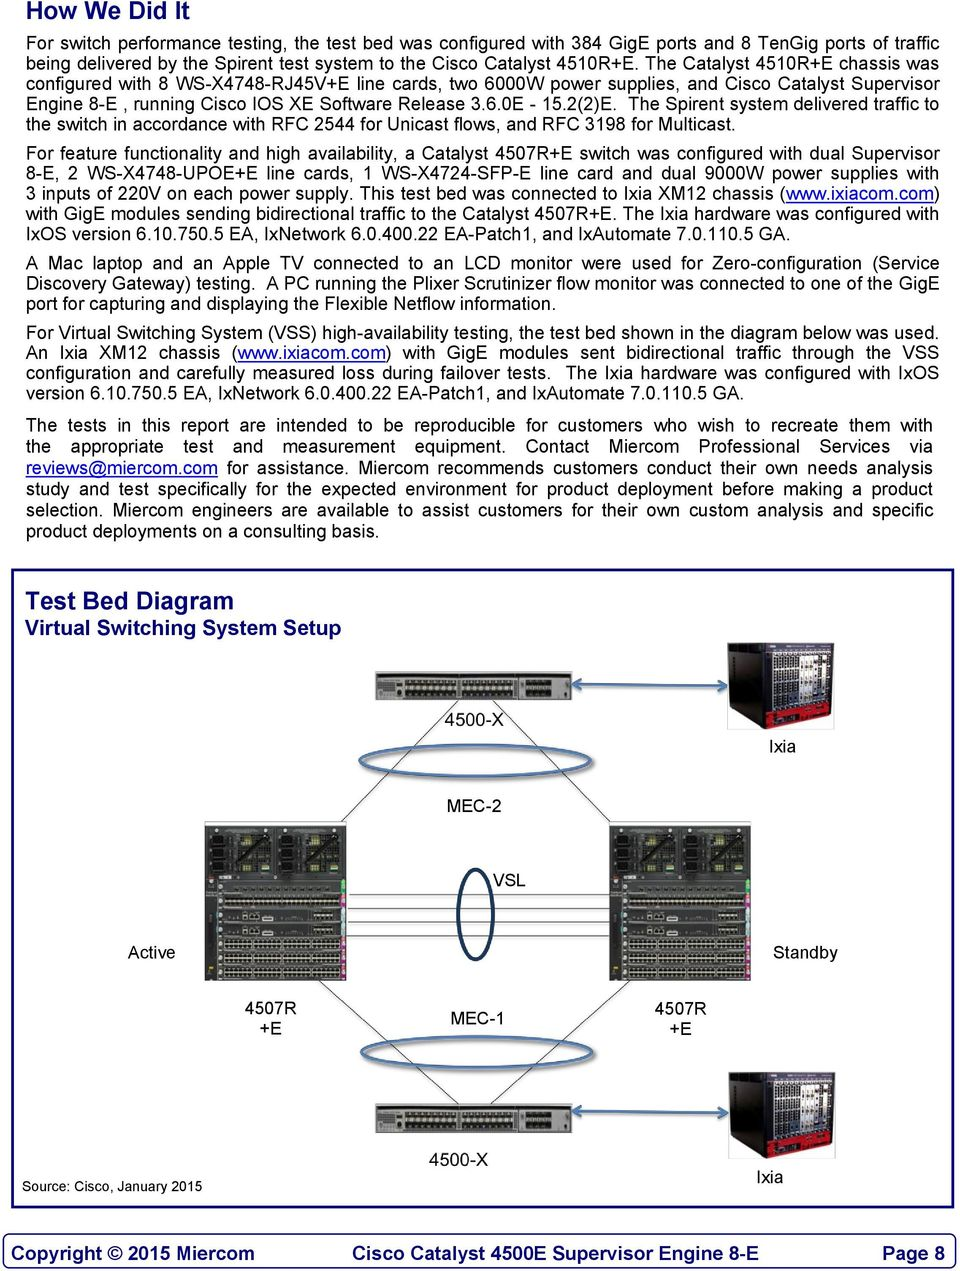 Lab Testing Summary Report Pdf Macsec On Catalyst 3750x Series Switch Configuration Example Cisco 22e The Spirent System Delivered Traffic To In Accordance